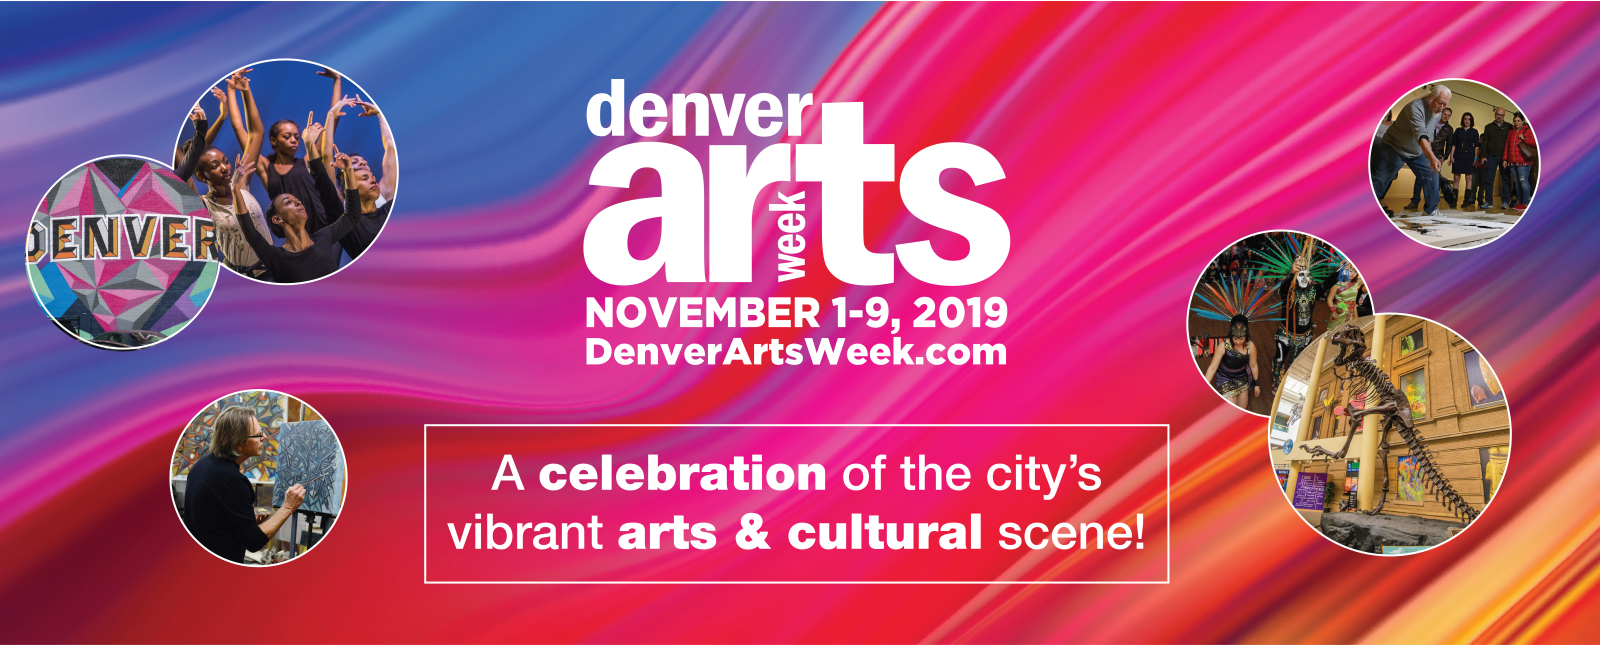 Denver Arts Week 2019 from Nov. 1 through Nov. 9